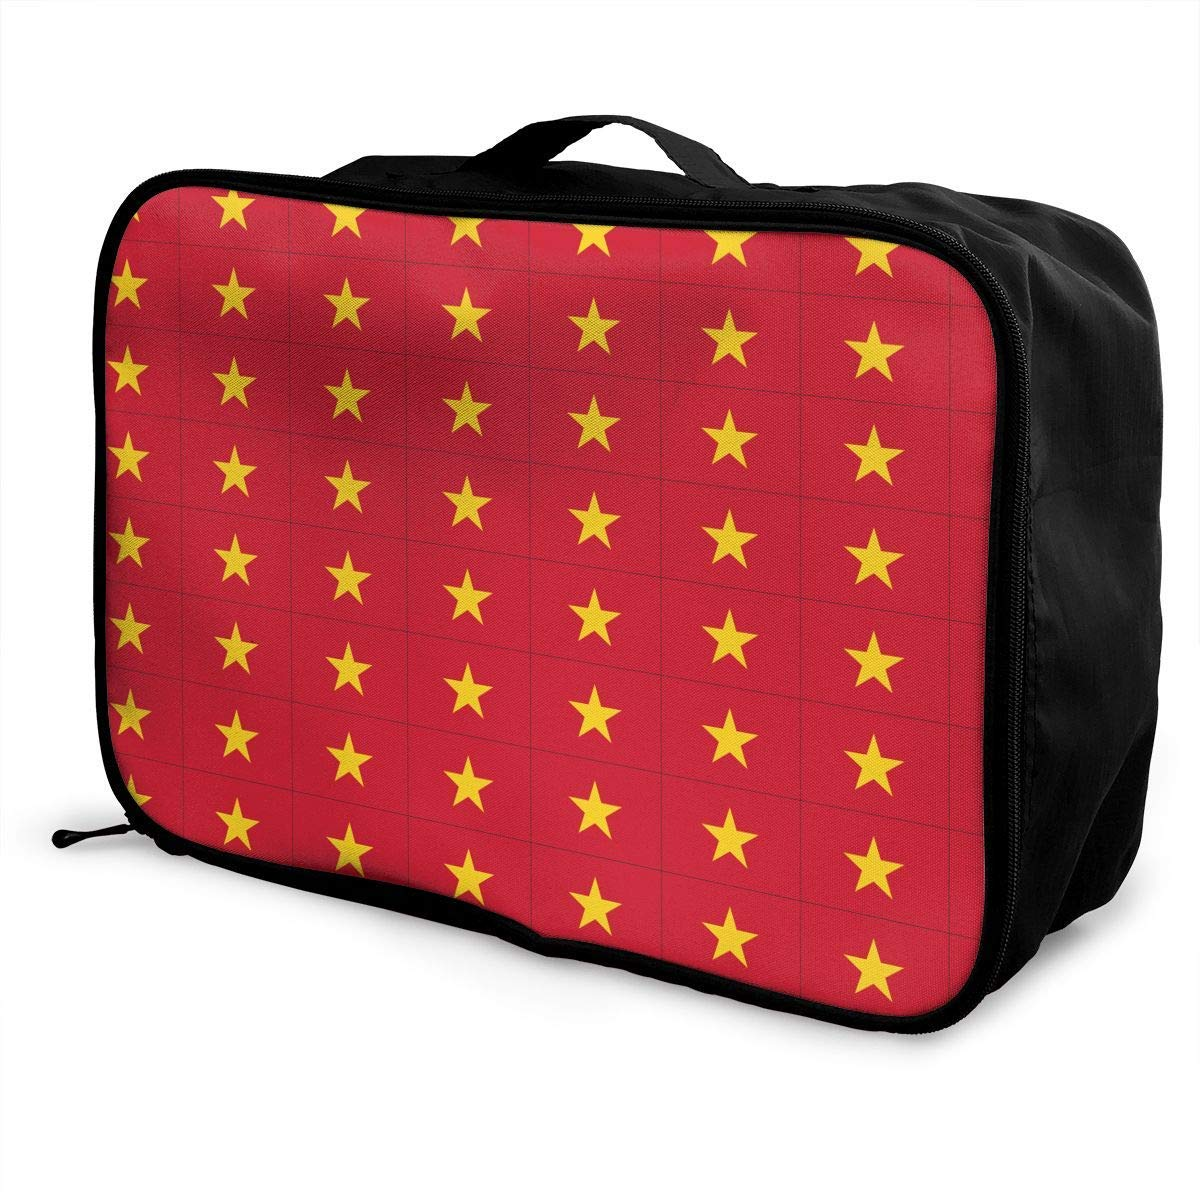 Portable Luggage Duffel Bag Originality Vietnam Flag Travel Bags Carry-on In Trolley Handle